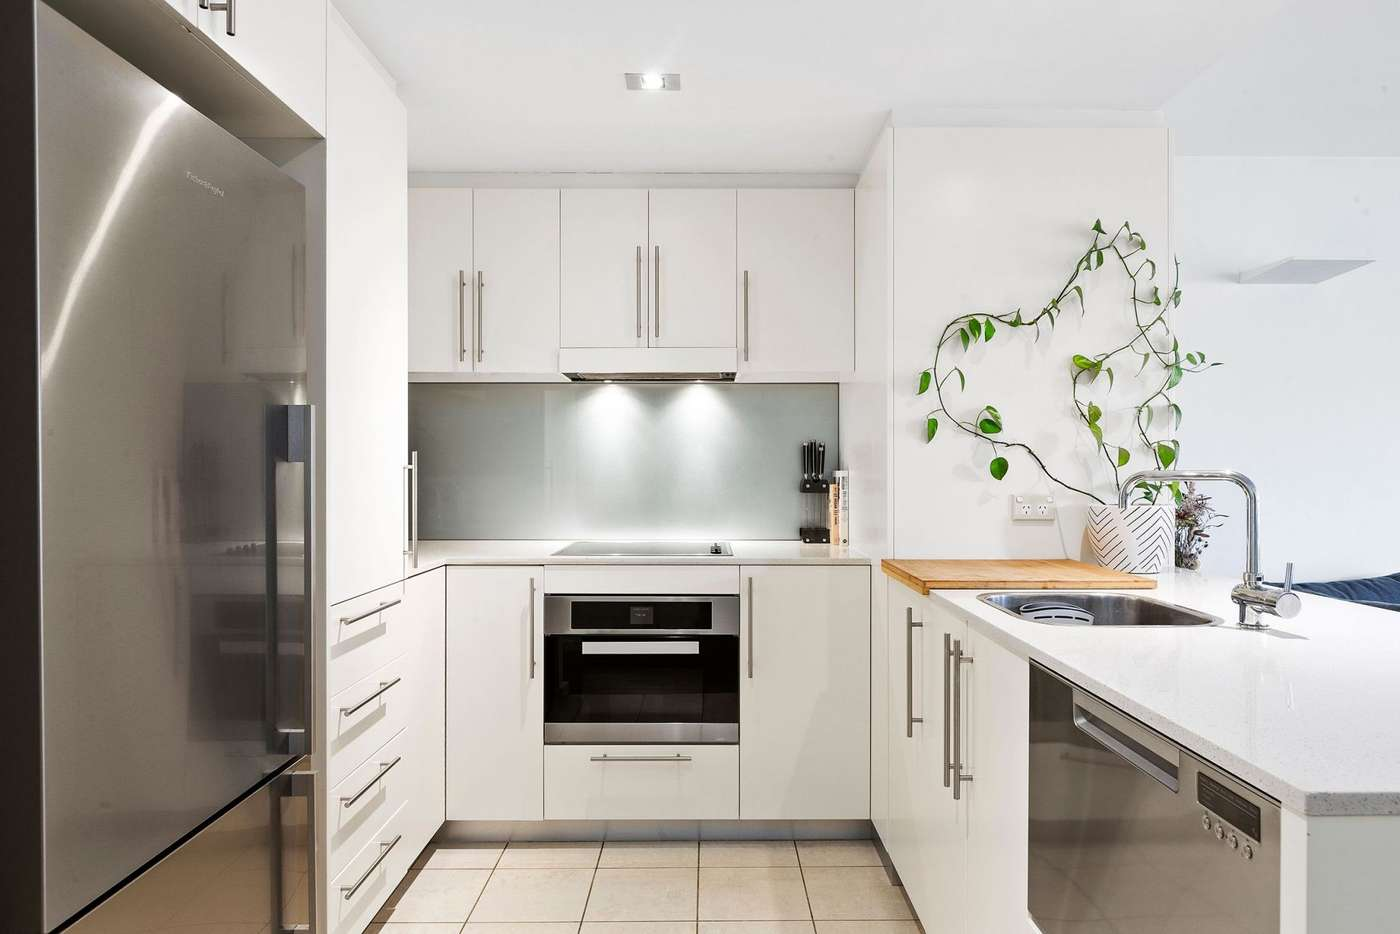 Main view of Homely apartment listing, 1006/18-20 Pelican Street, Surry Hills NSW 2010